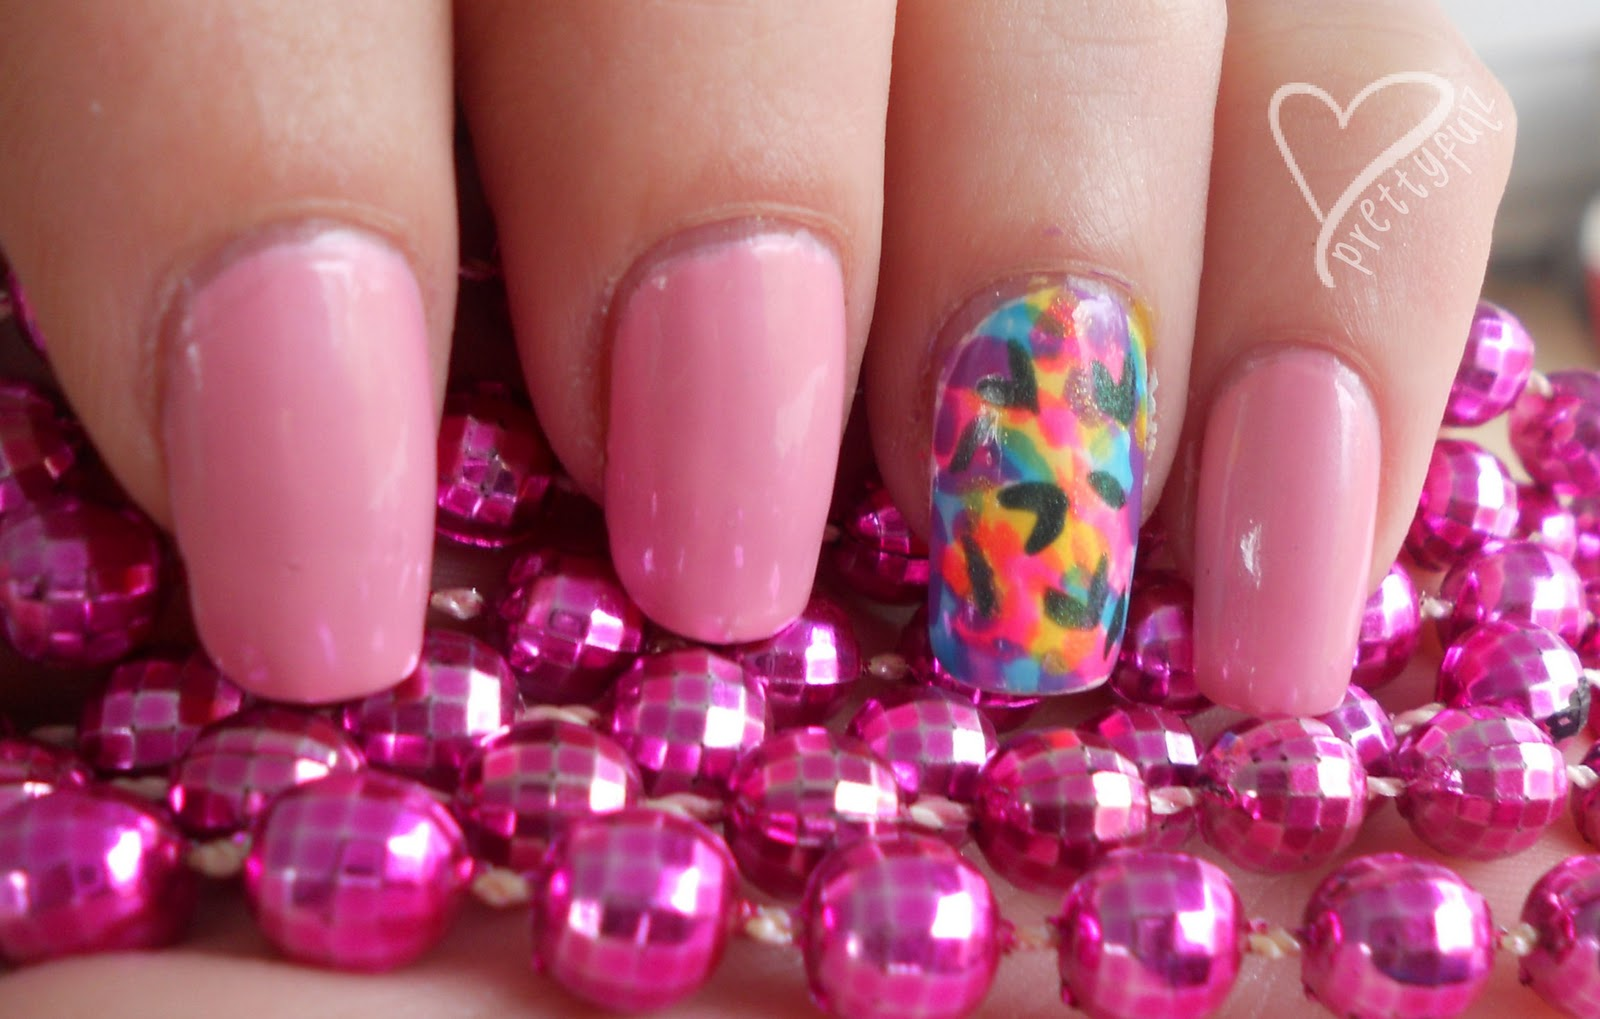 The Astonishing Nail tip designs tumblr Images